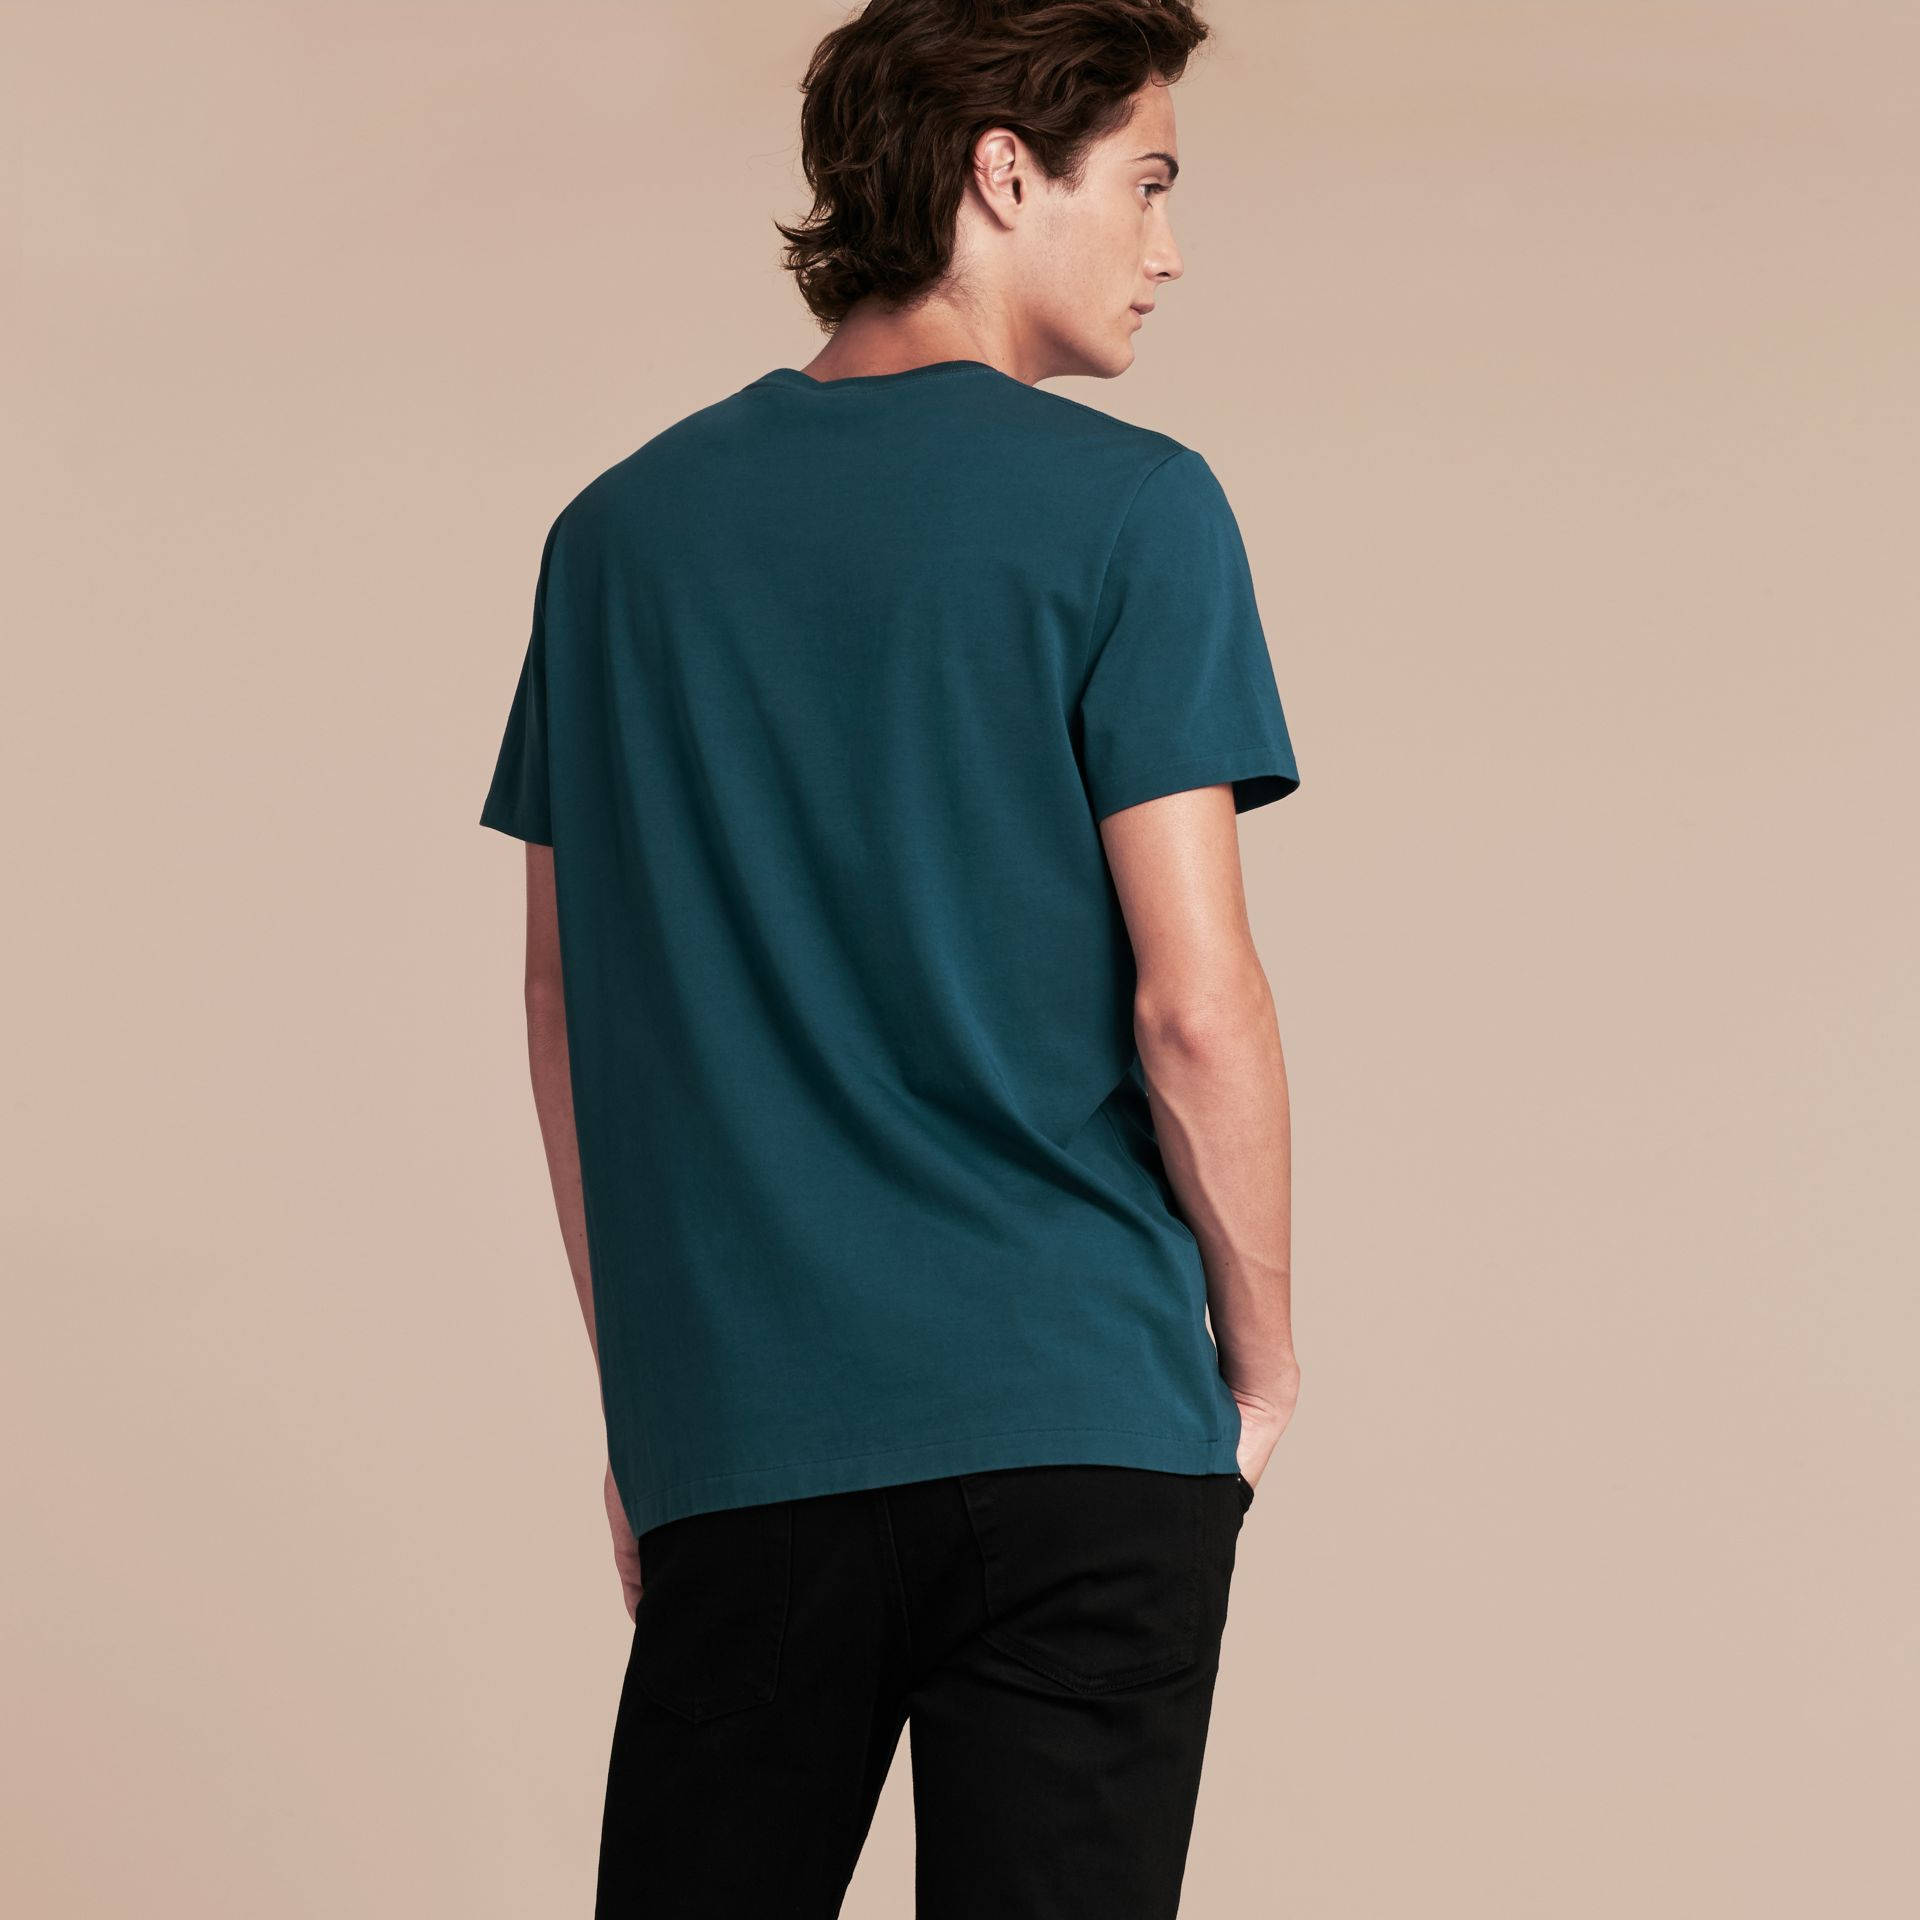 Cotton Jersey T-shirt in Mineral Blue - Men | Burberry - gallery image 1